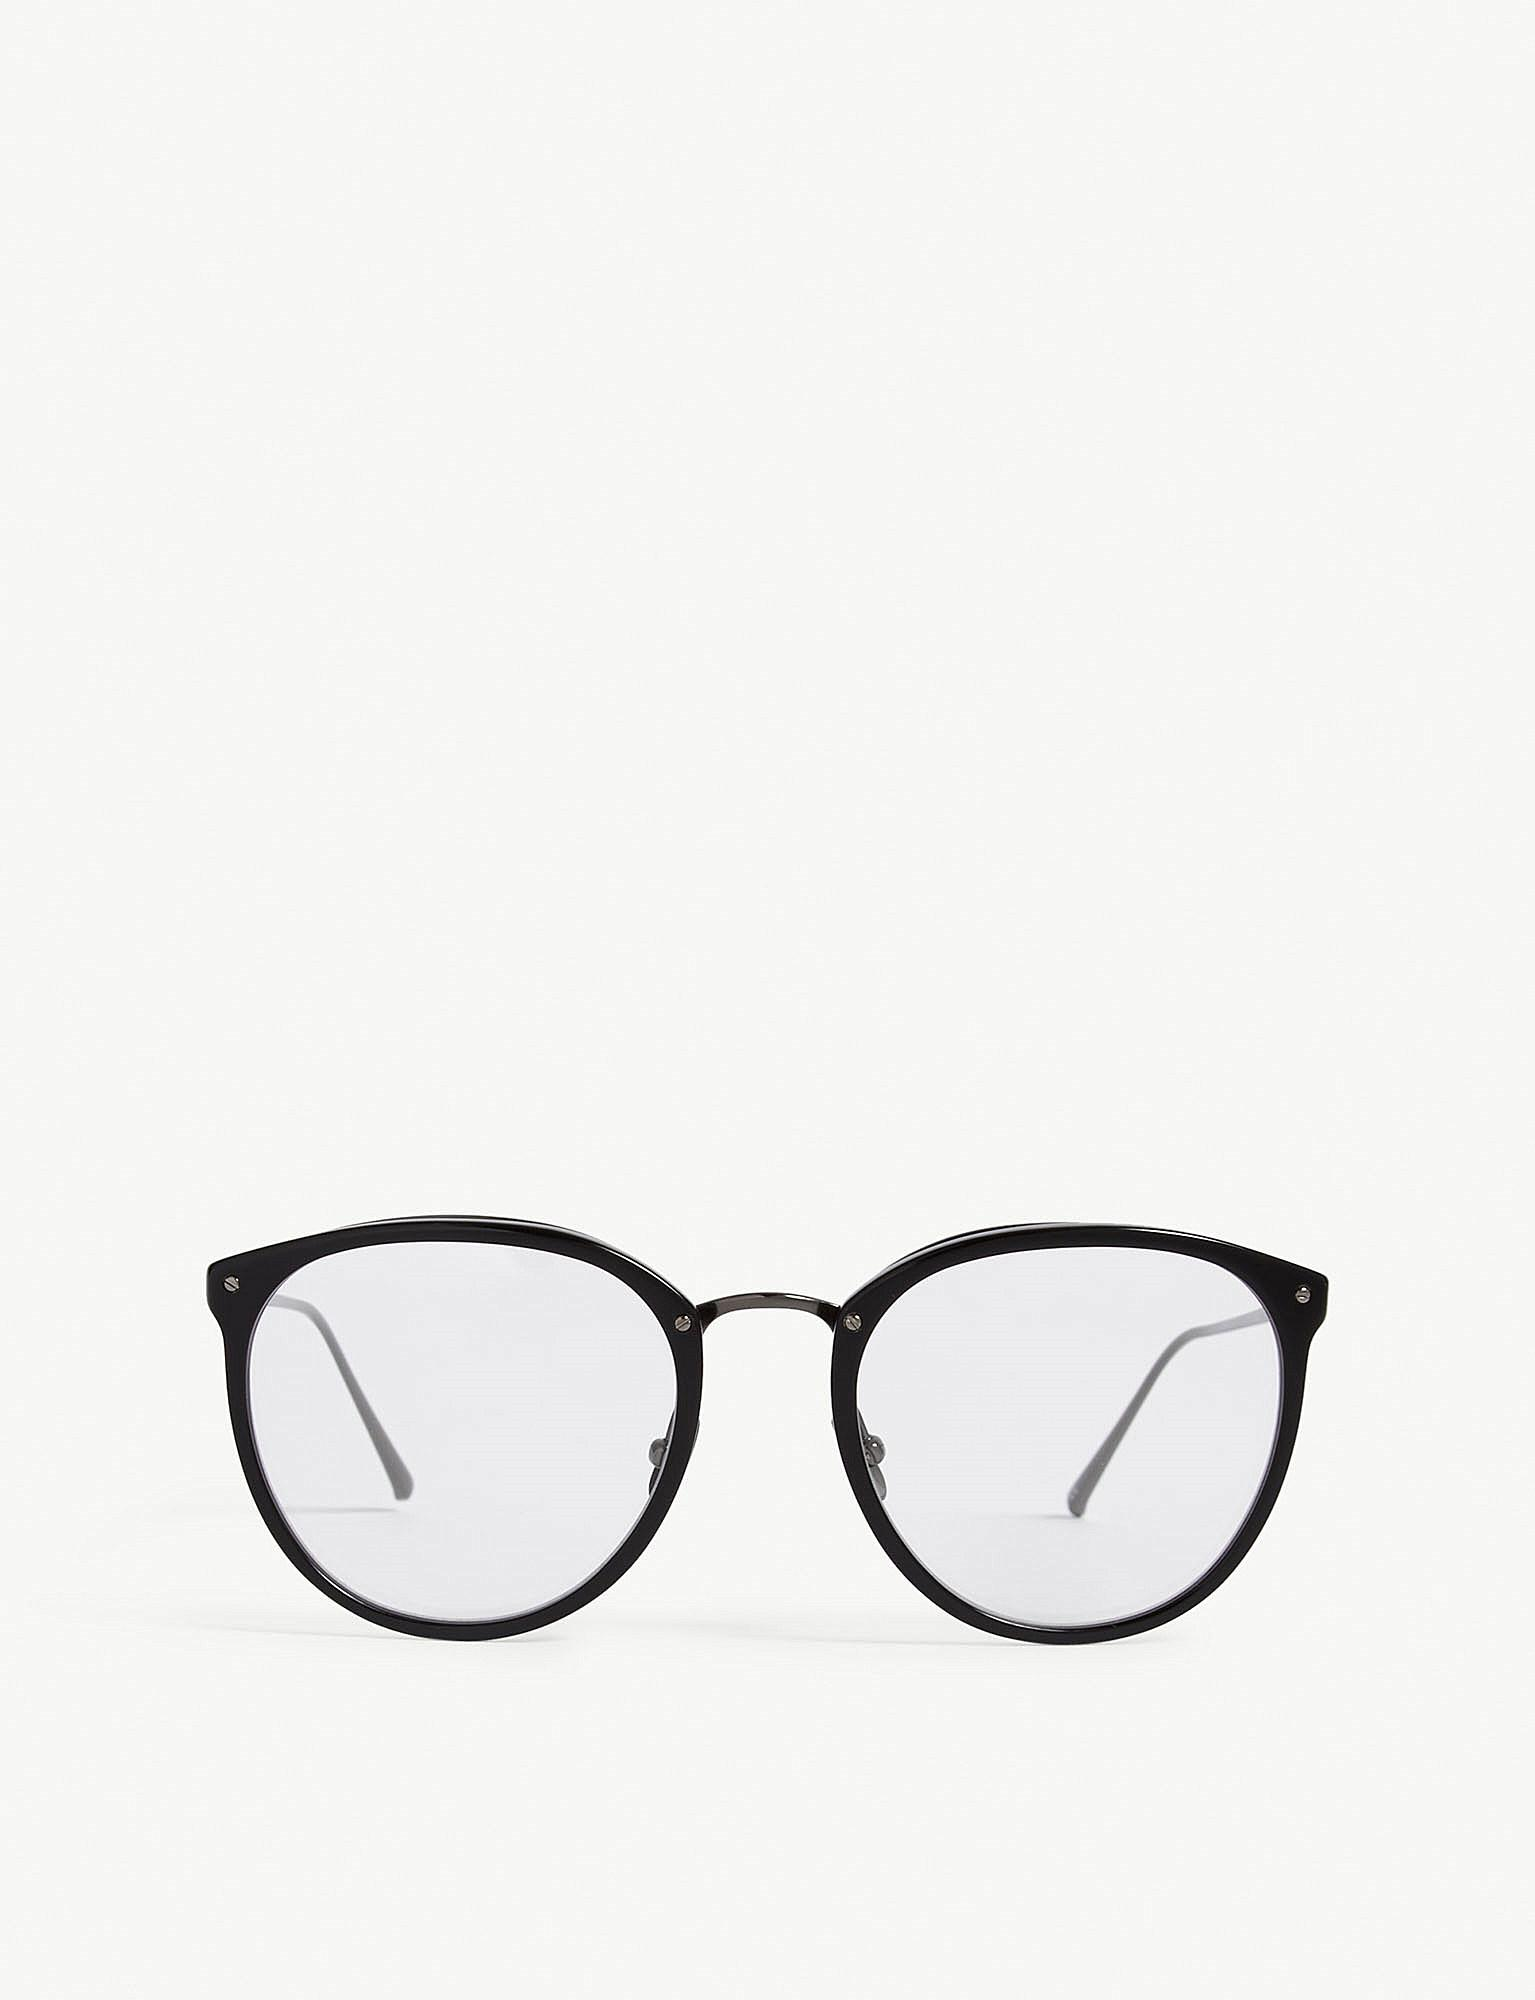 58c35c1f283b Lyst - Linda Farrow Lfl251 Oval-frame Glasses in Black